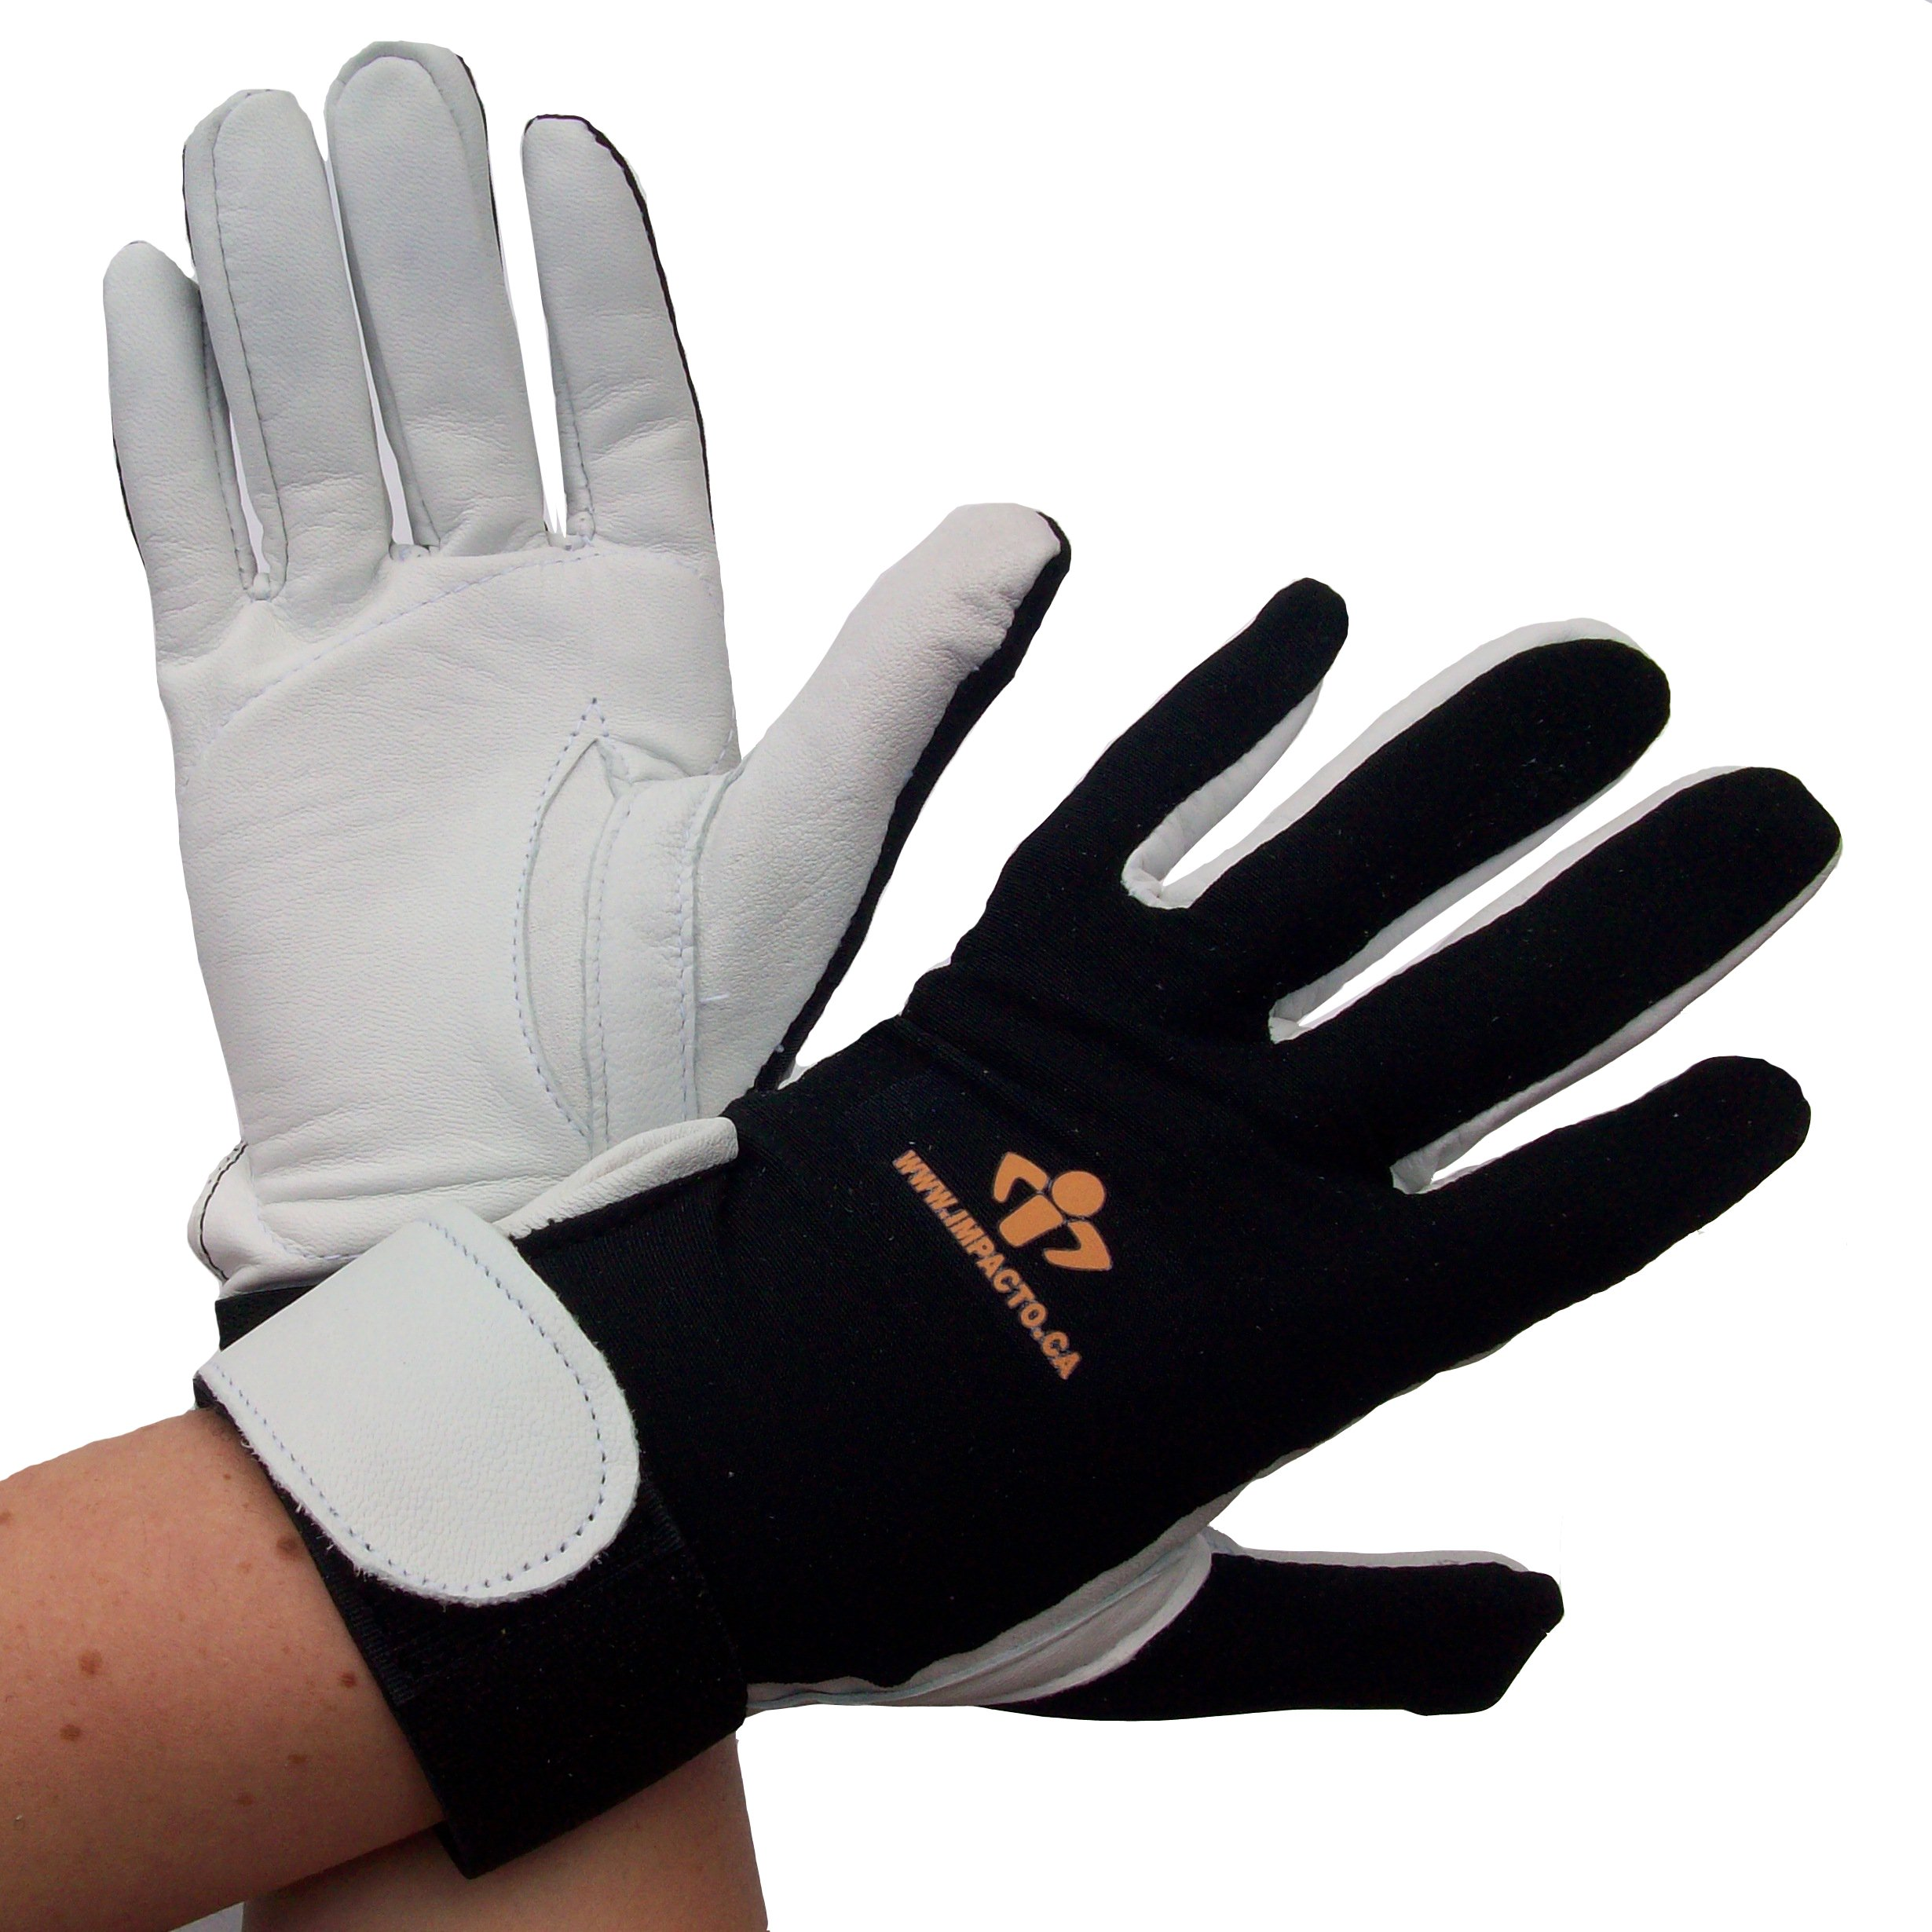 Impacto 40330110030 Anti-Vibration Glove, Black/White